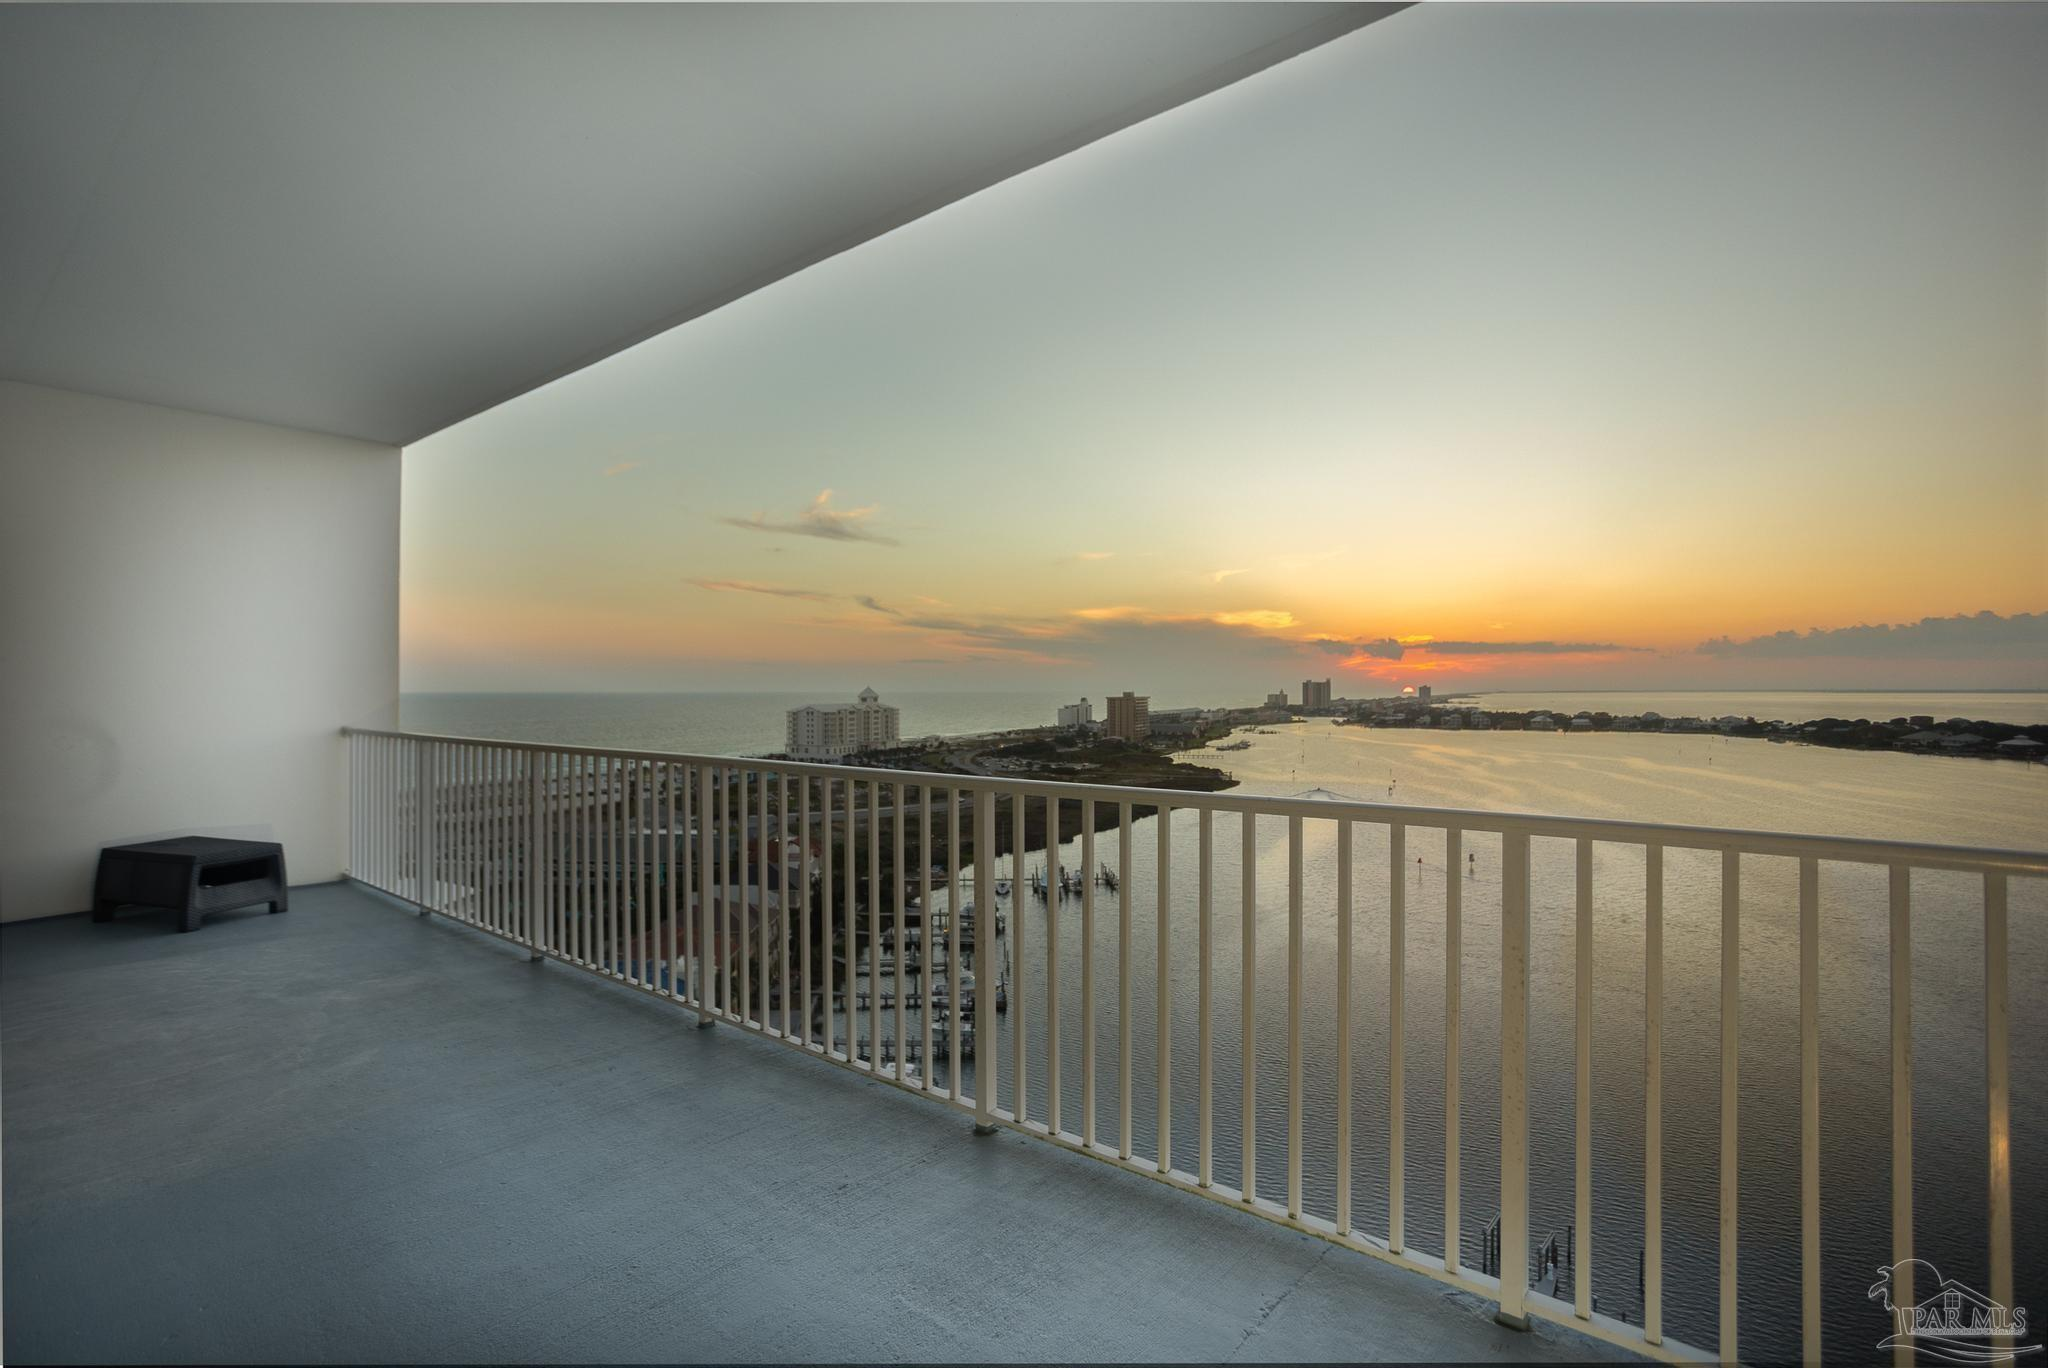 Welcome to penthouse living à la South Harbour. This home boasts views from every room and every window of the Gulf, the Intercoastal and Little Sabine Bay. A home built for entertaining, the balcony can hold 30 - 50 of your closest friends, and be prepared for them all to swoon when they catch a glimpse of the sunset from here. This 3/3 does not leave you wanting for the interior, either. The kitchen boasts new quartz countertops that overlook the dining area and spacious living room. French doors connect these spaces to the bonus room, and each of these wall-to-wall windows and sliding doors are tinted for your convenience and comfort. Sliding doors give entry to the balcony from the living room, bonus room, and master bedroom. The master is generously sized to accommodate your king sized bedroom ensemble and still allows you to easily move around. A hallway connects the master bedroom and bathroom, tying this suite together with his-and-hers closets and a fully mirrored dressing area between them, a door at each end lets you easily close off from the rest of the home. The master bath also boasts new quartz countertops, a deep jetted soaking tub, and a separate walk-in shower. This end of the home also features a 2nd bedroom with its own dedicated bathroom. You guessed it, quartz countertops! Passing back through the entry to the opposite end of the home, you will find the 3rd bedroom, extra storage space, and a common full bathroom. Travertine tile lies throughout the entire unit, with crushed seashell inlay to bring the aire of beach inside. Really, though, all you need to see is the sunset.